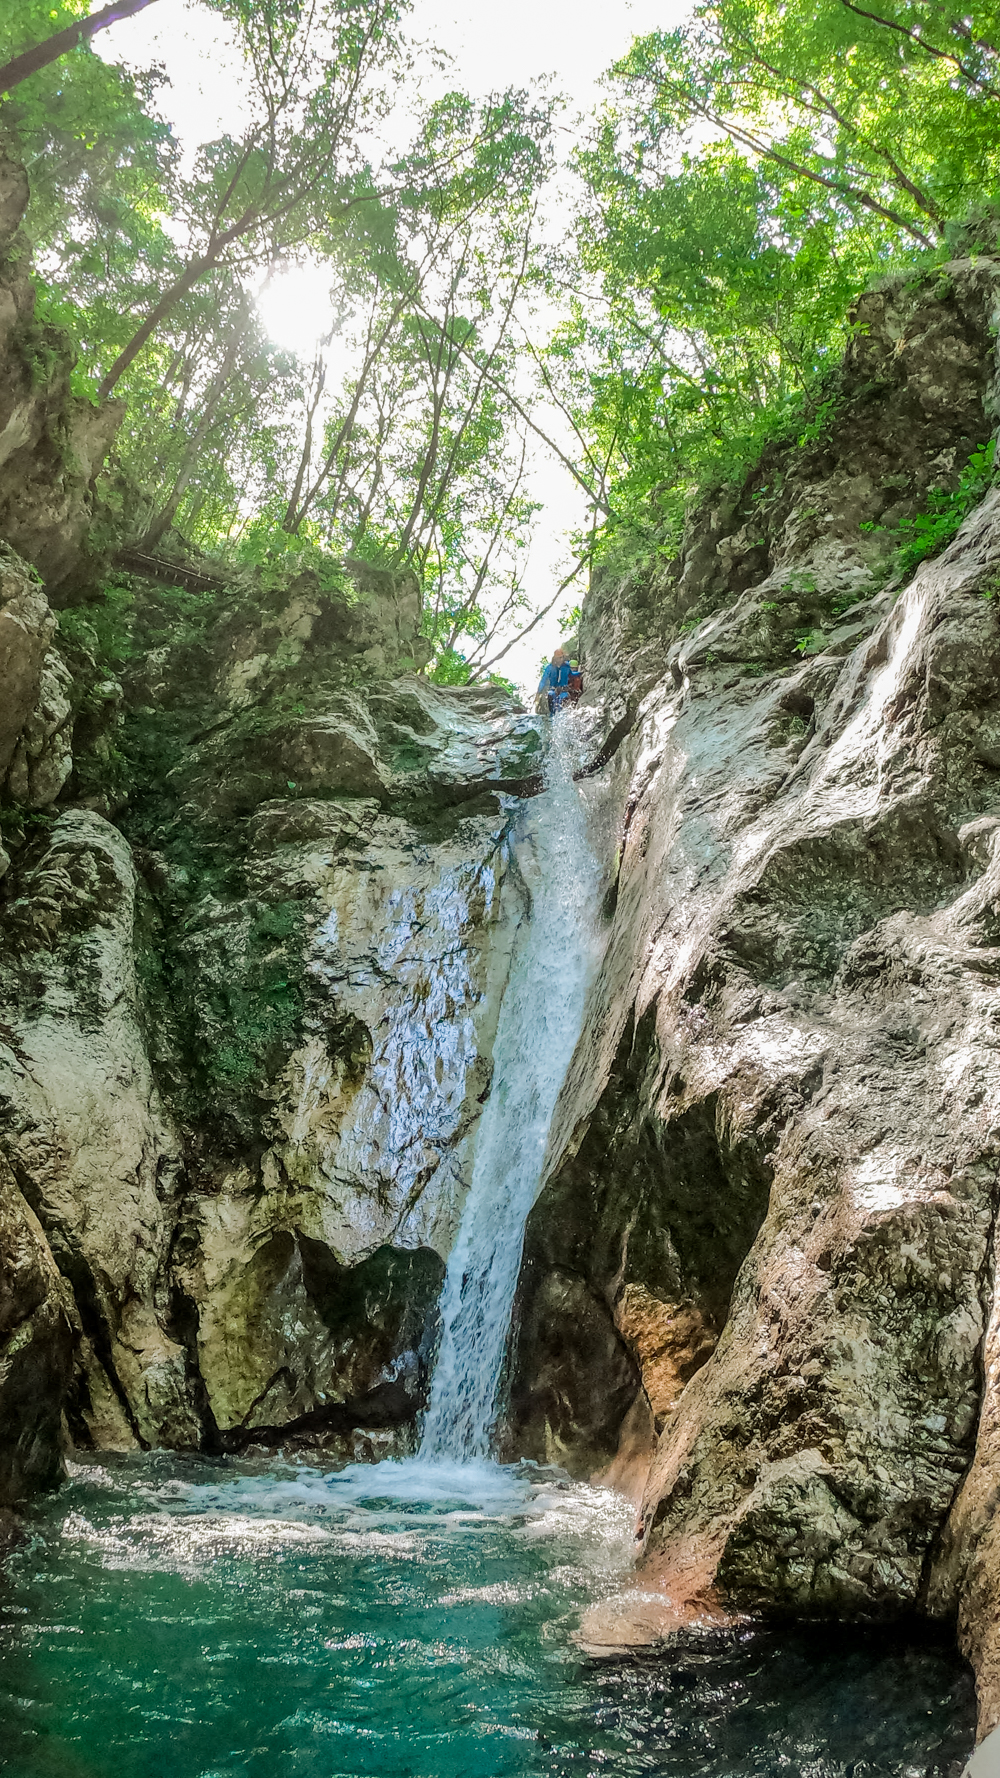 Canyoning Susec - Must-try adventures and activities in Bovec and Soca valley, Slovenia - Canyoning, rafting and zipline | Aliz's Wonderland